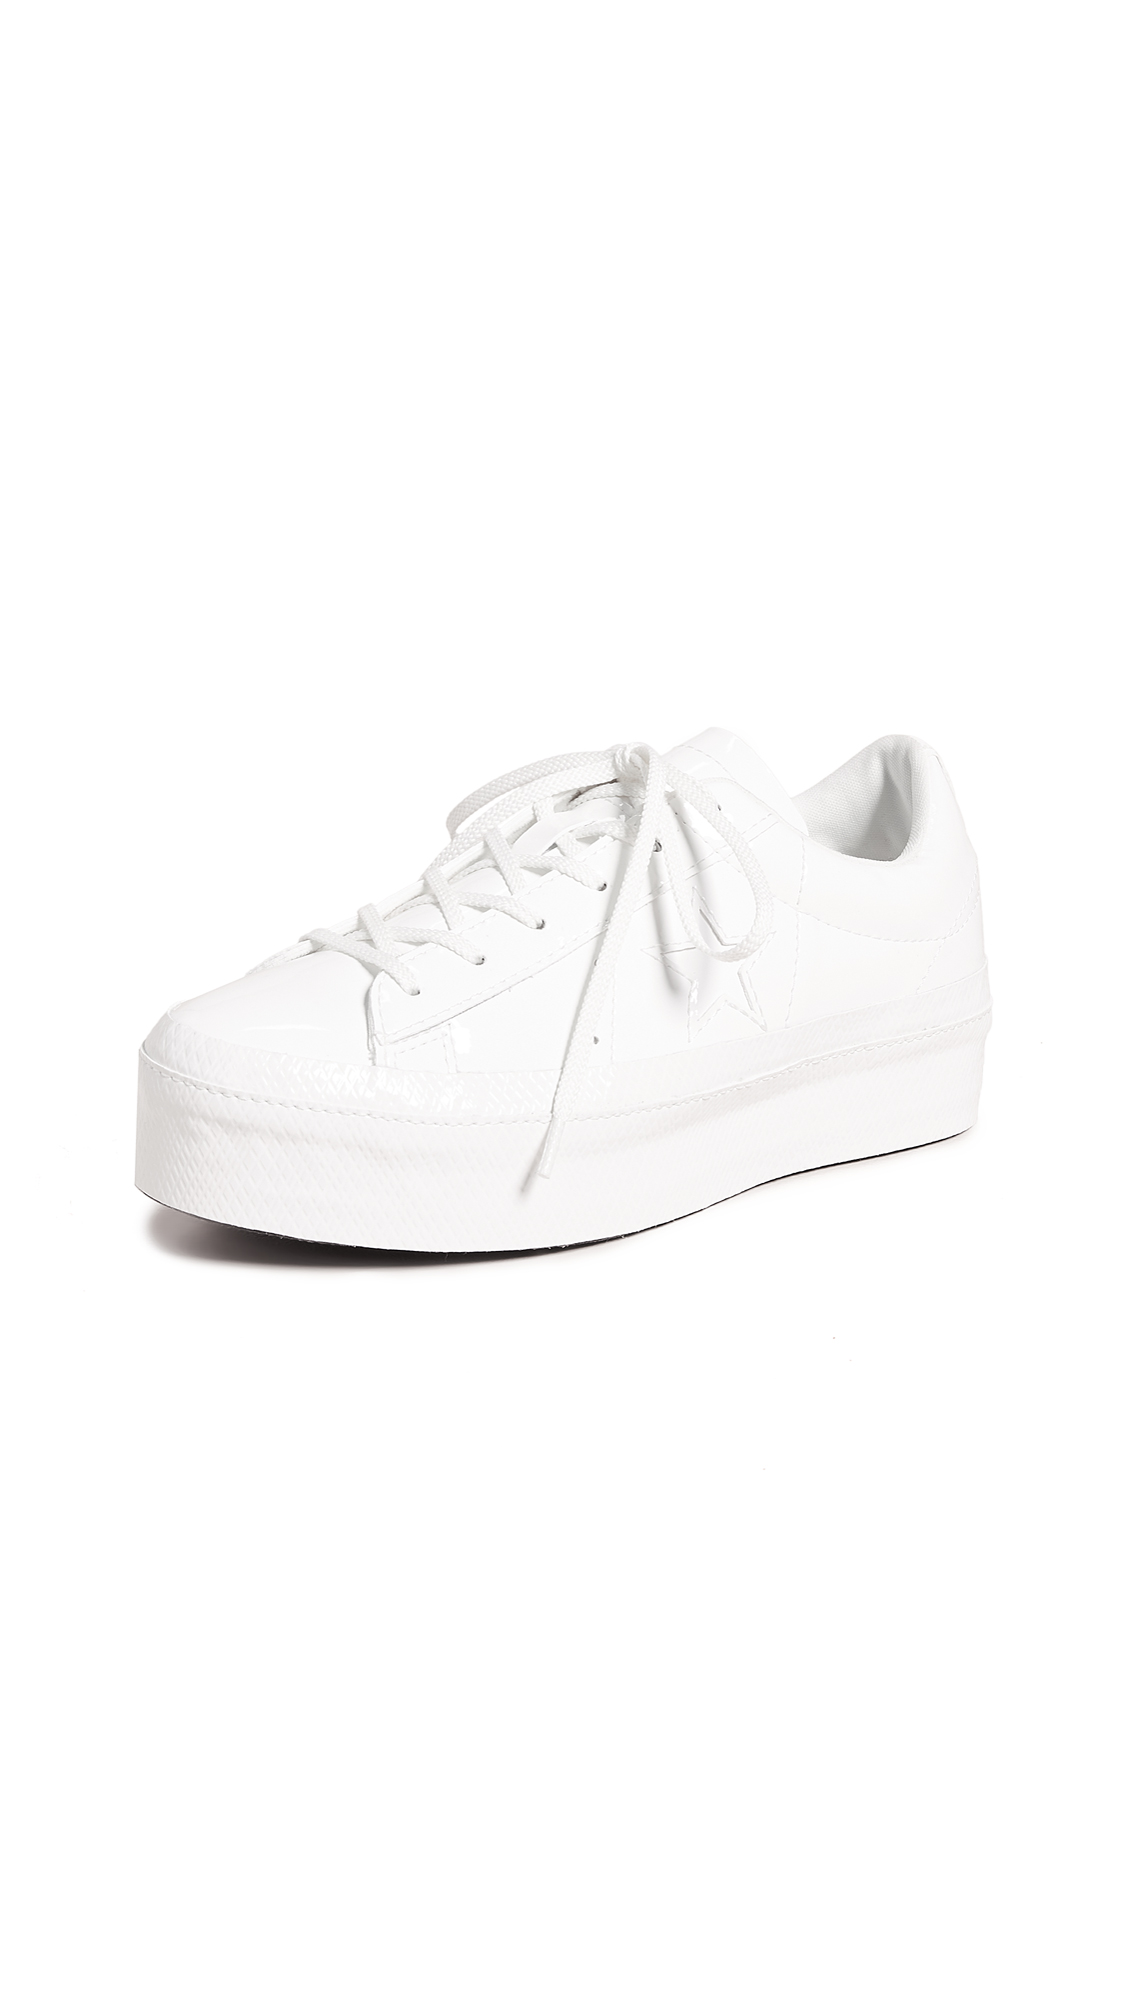 Converse One Star Ox Sneakers - Vintage White